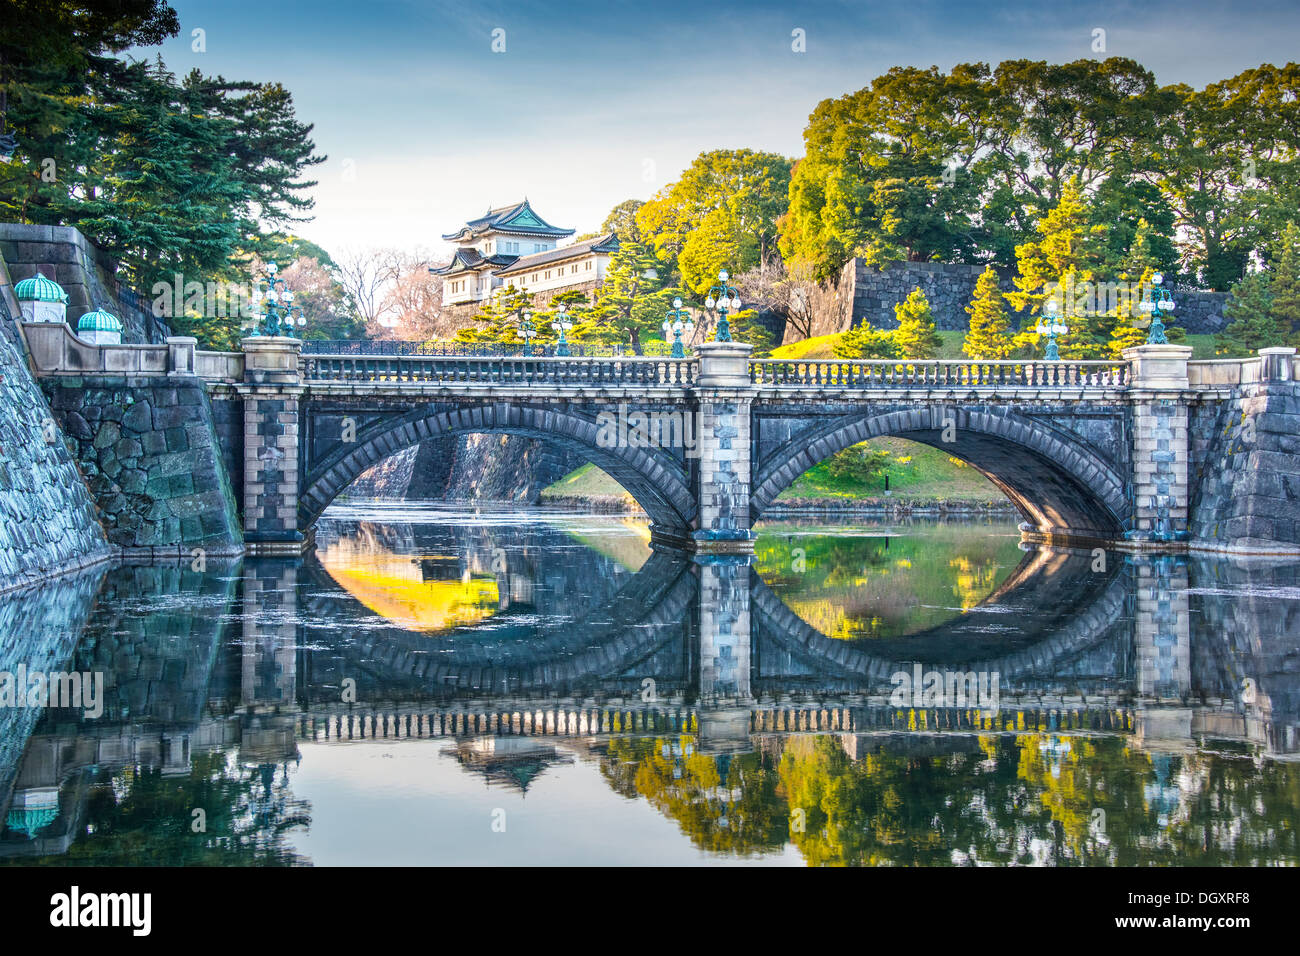 Tokyo Imperial Palace of Japan. Stock Photo